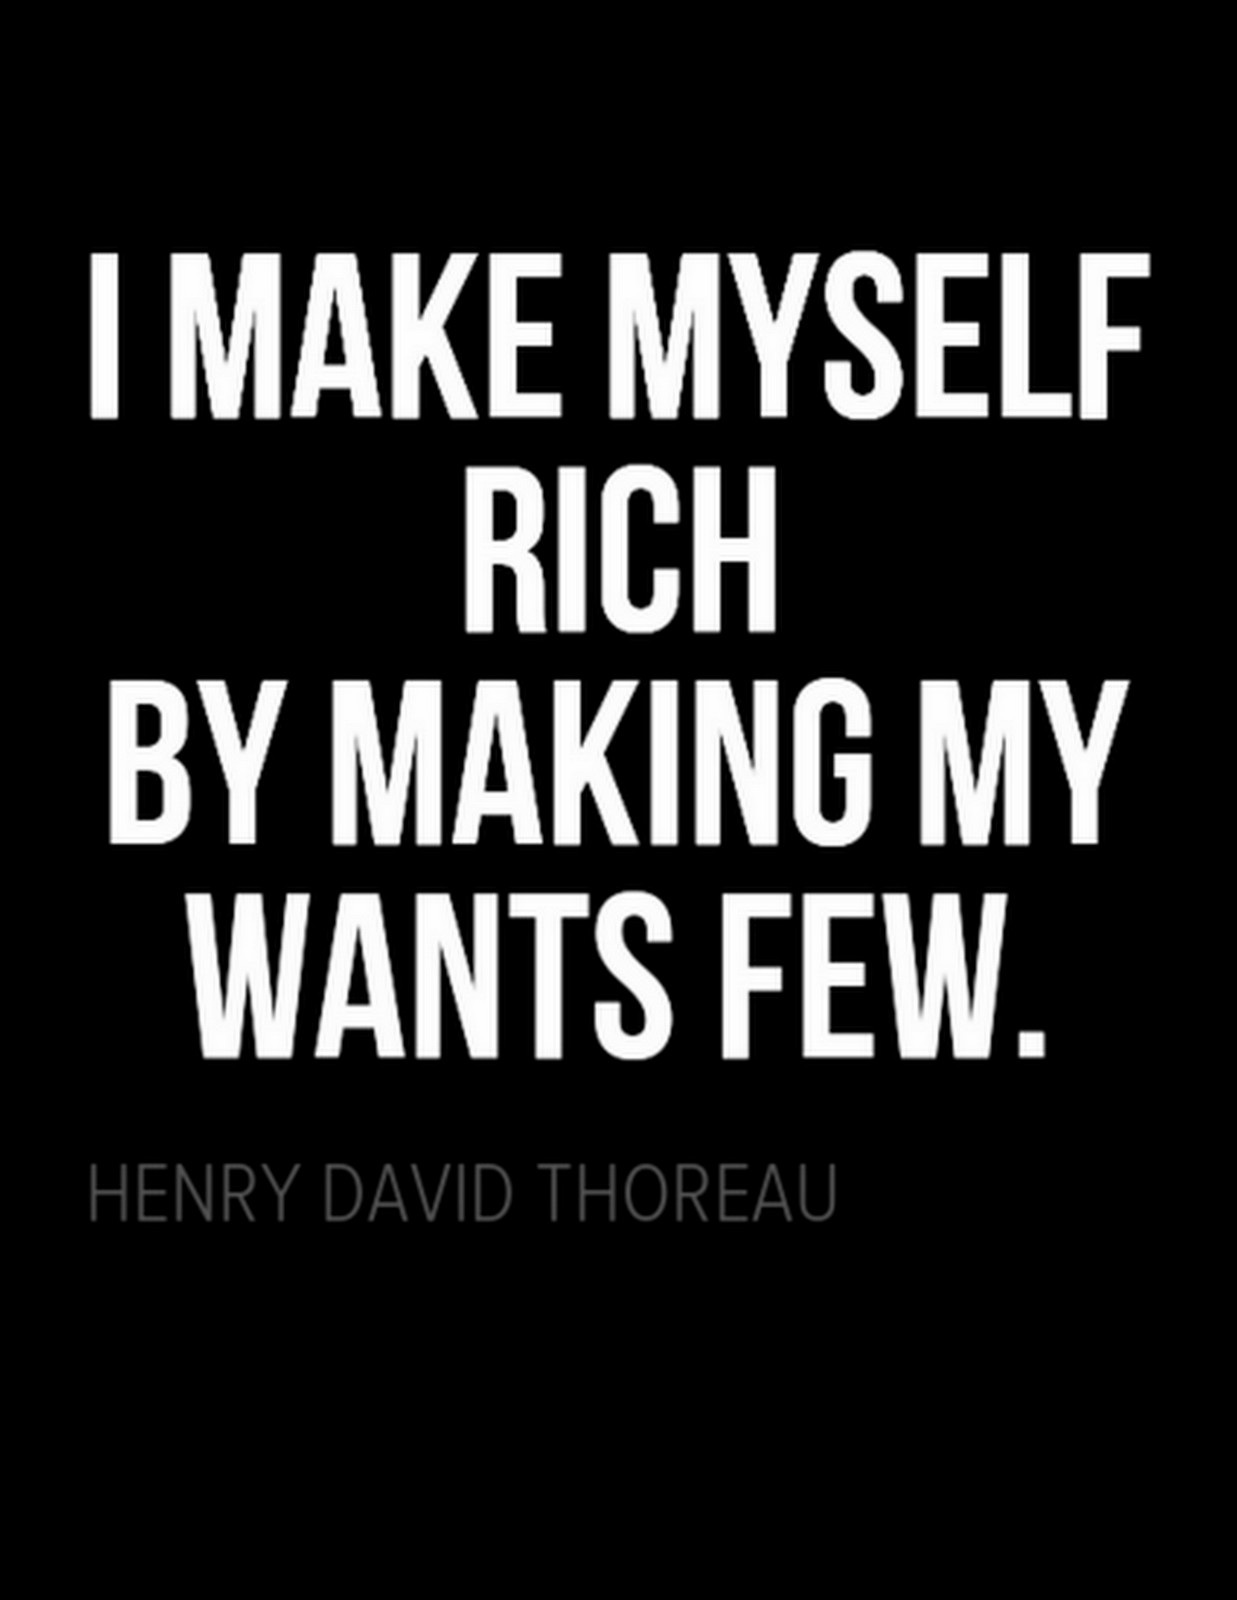 MAKE MYSELF RICH